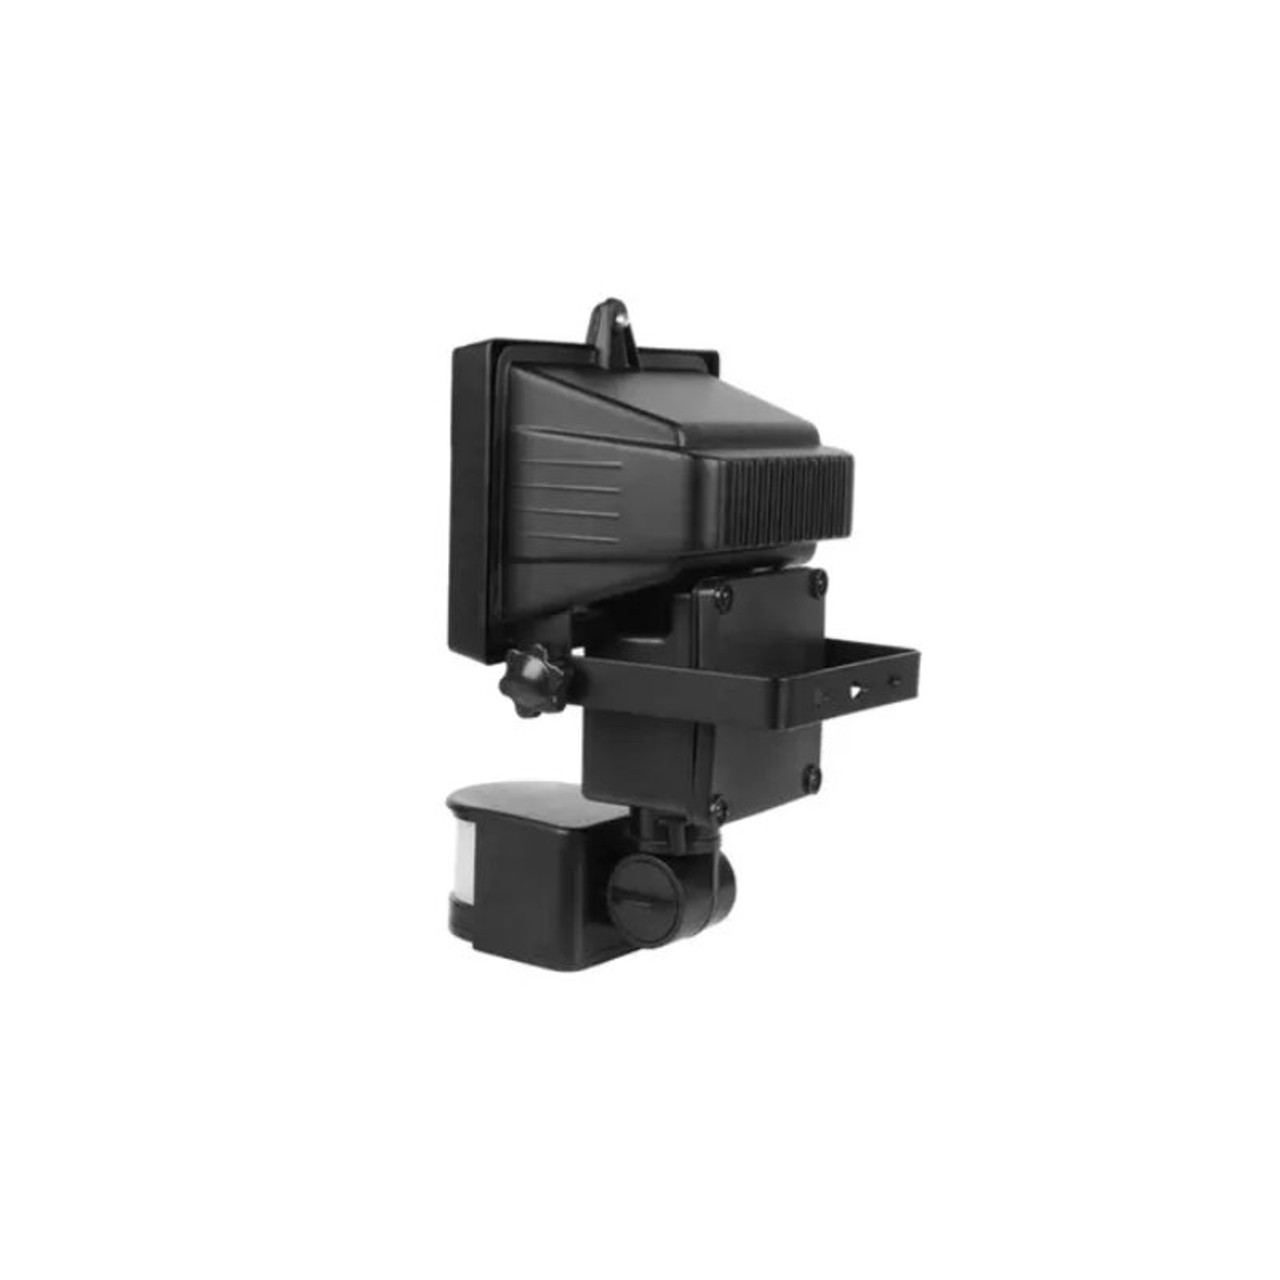 100-LED Solar Powered Floodlight - Passive Infrared Sensor Activated